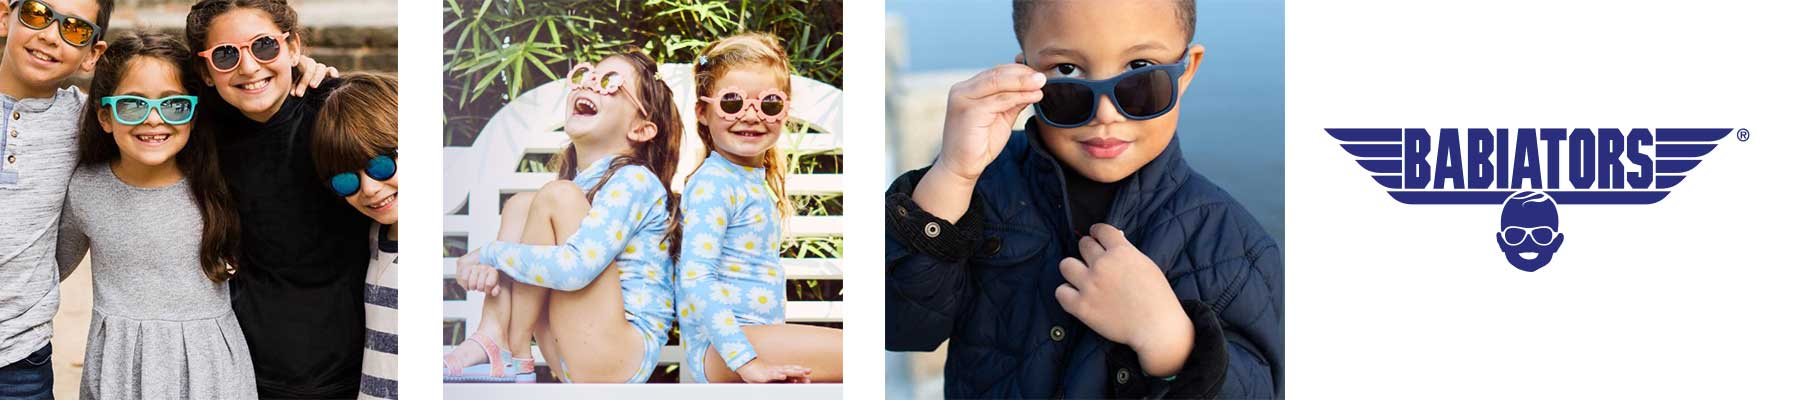 Babiators sunglass collection. Sturdy made for babies and kids.